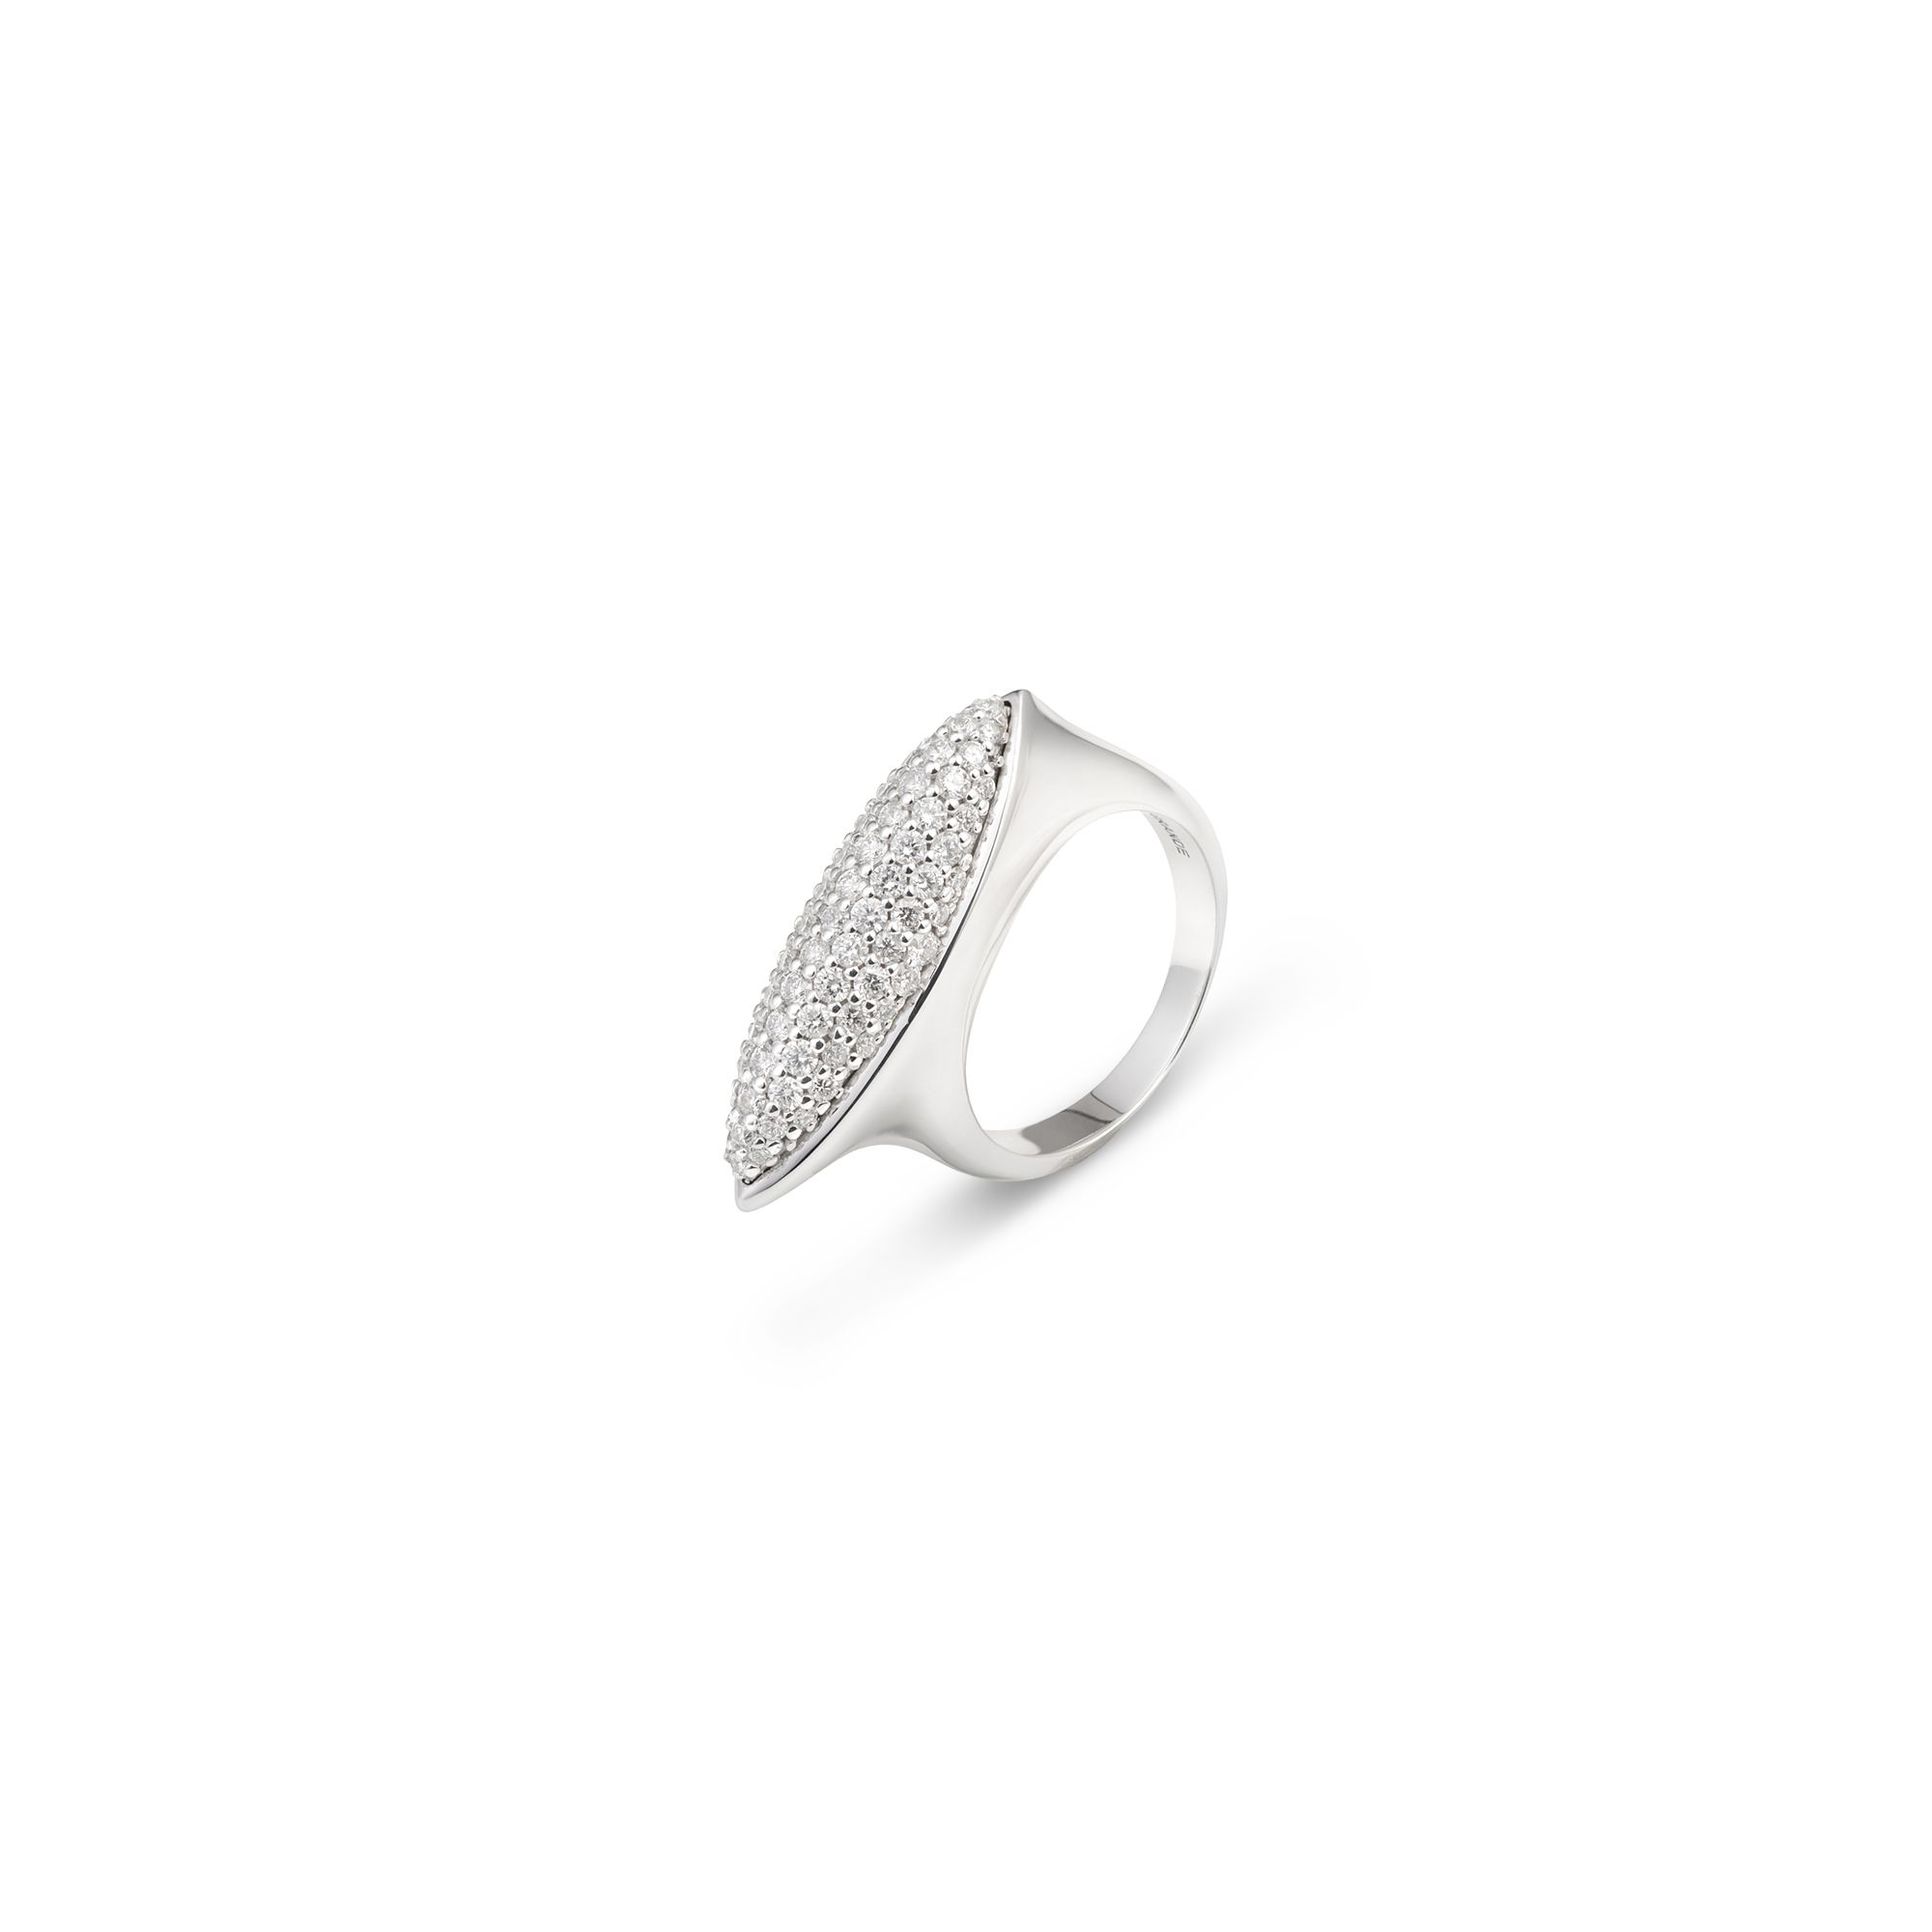 Navetta ring with diamonds White gold ring with diamonds